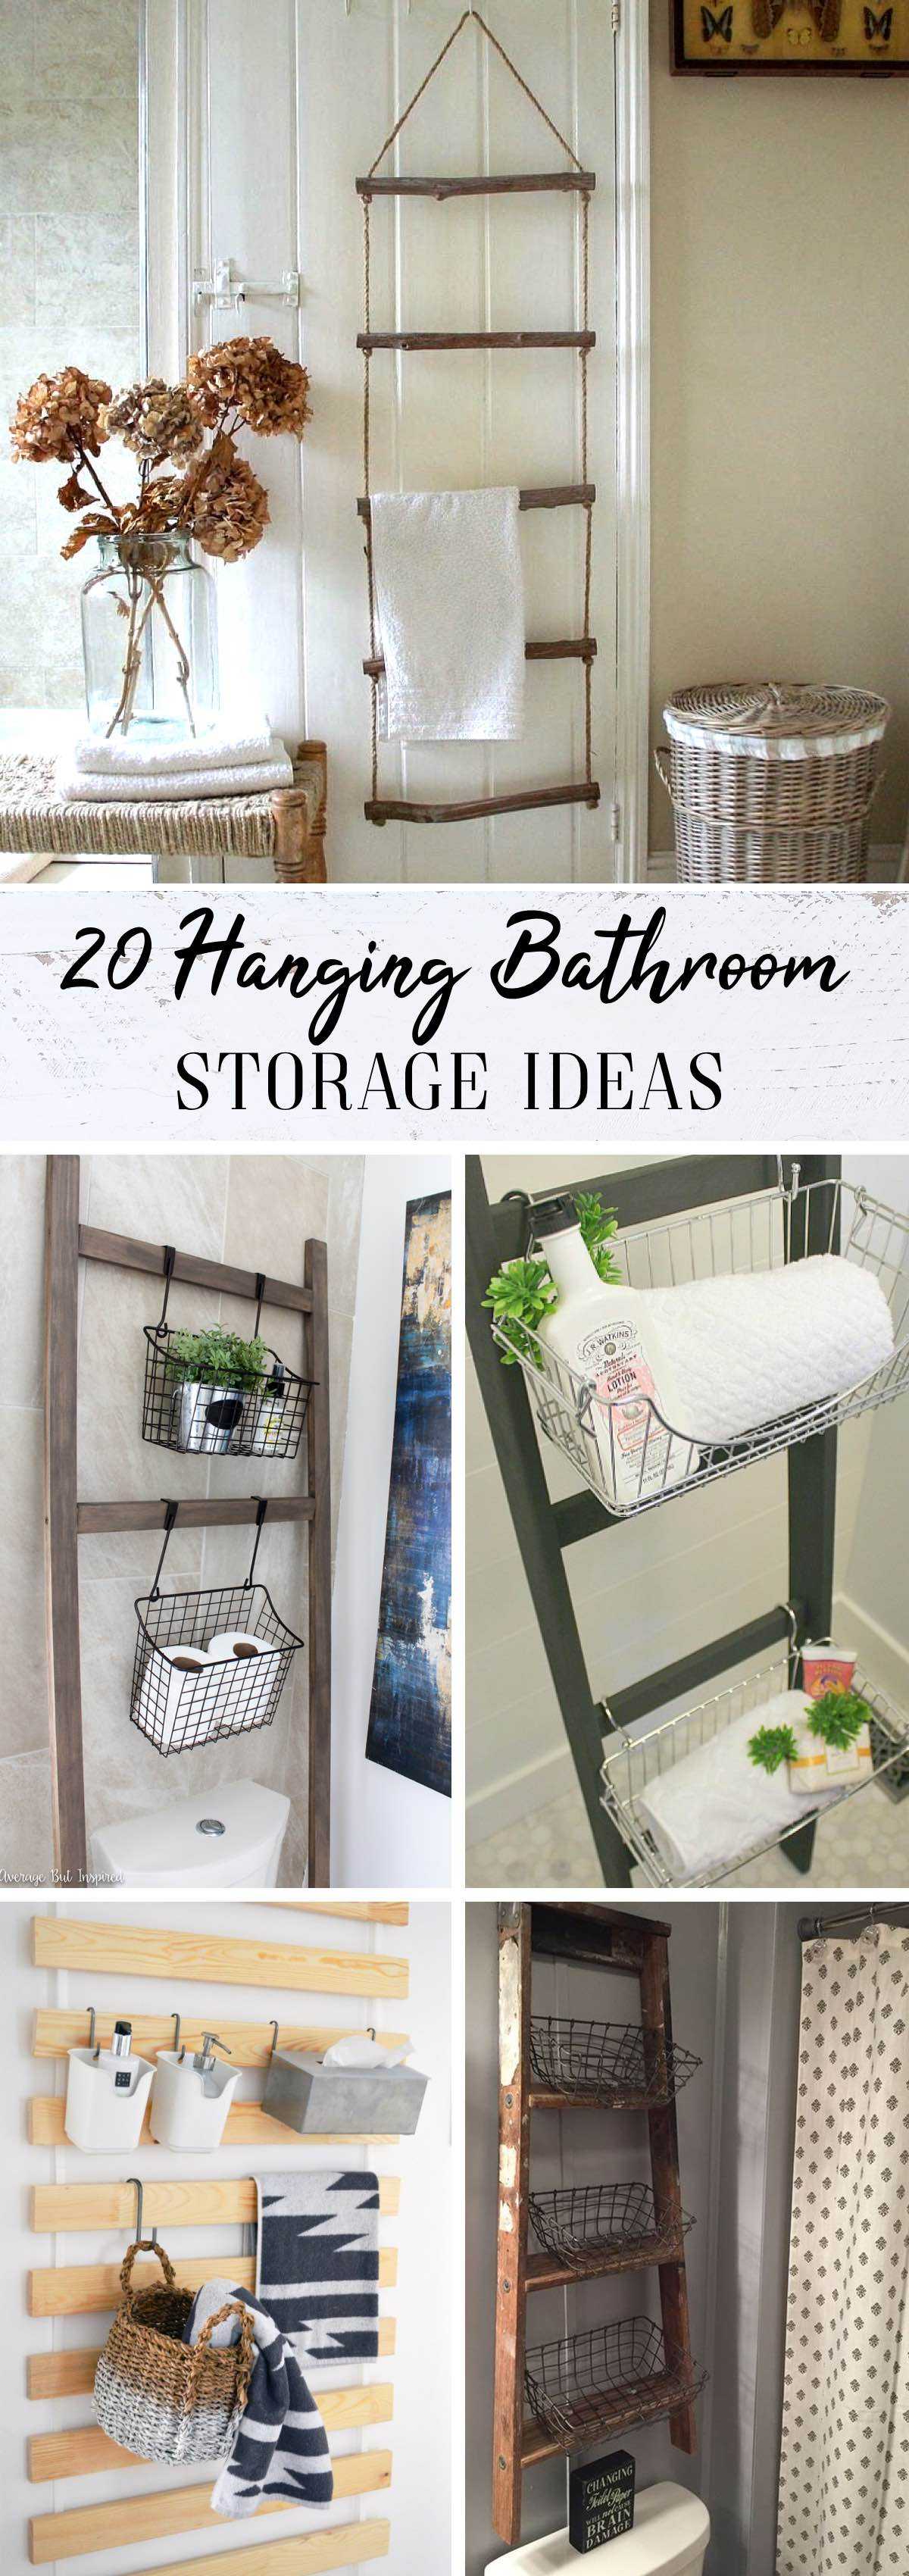 20 Hanging Bathroom Storage Ideas Making the Most of the Wall Space!